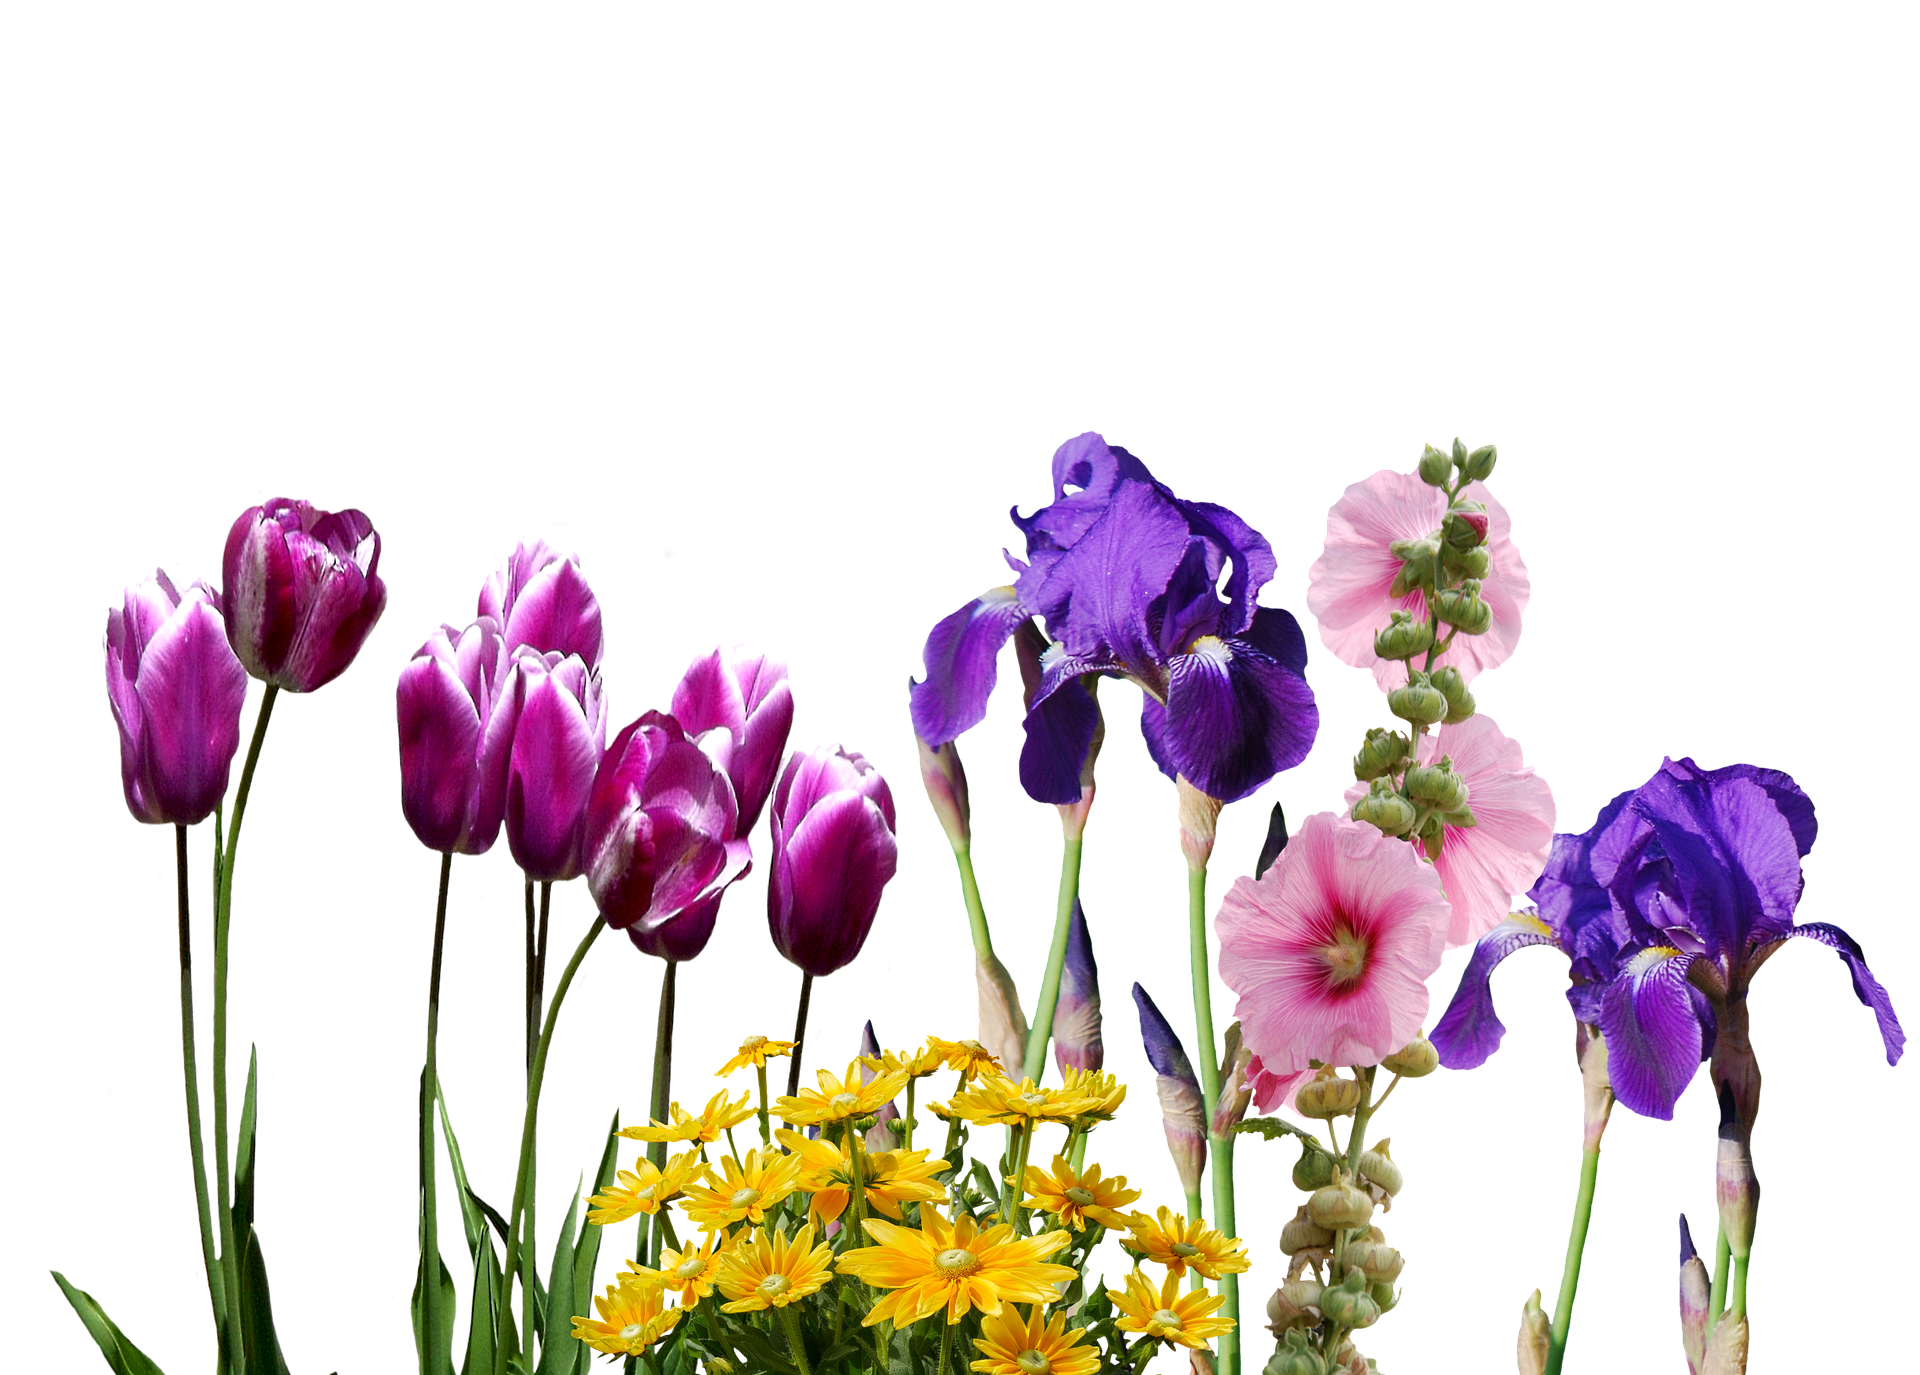 This Flower Is Beautiful But Highly Injurious For Health 19201080 Via Classy Bro Flower Images Spring Wedding Flowers Tulips